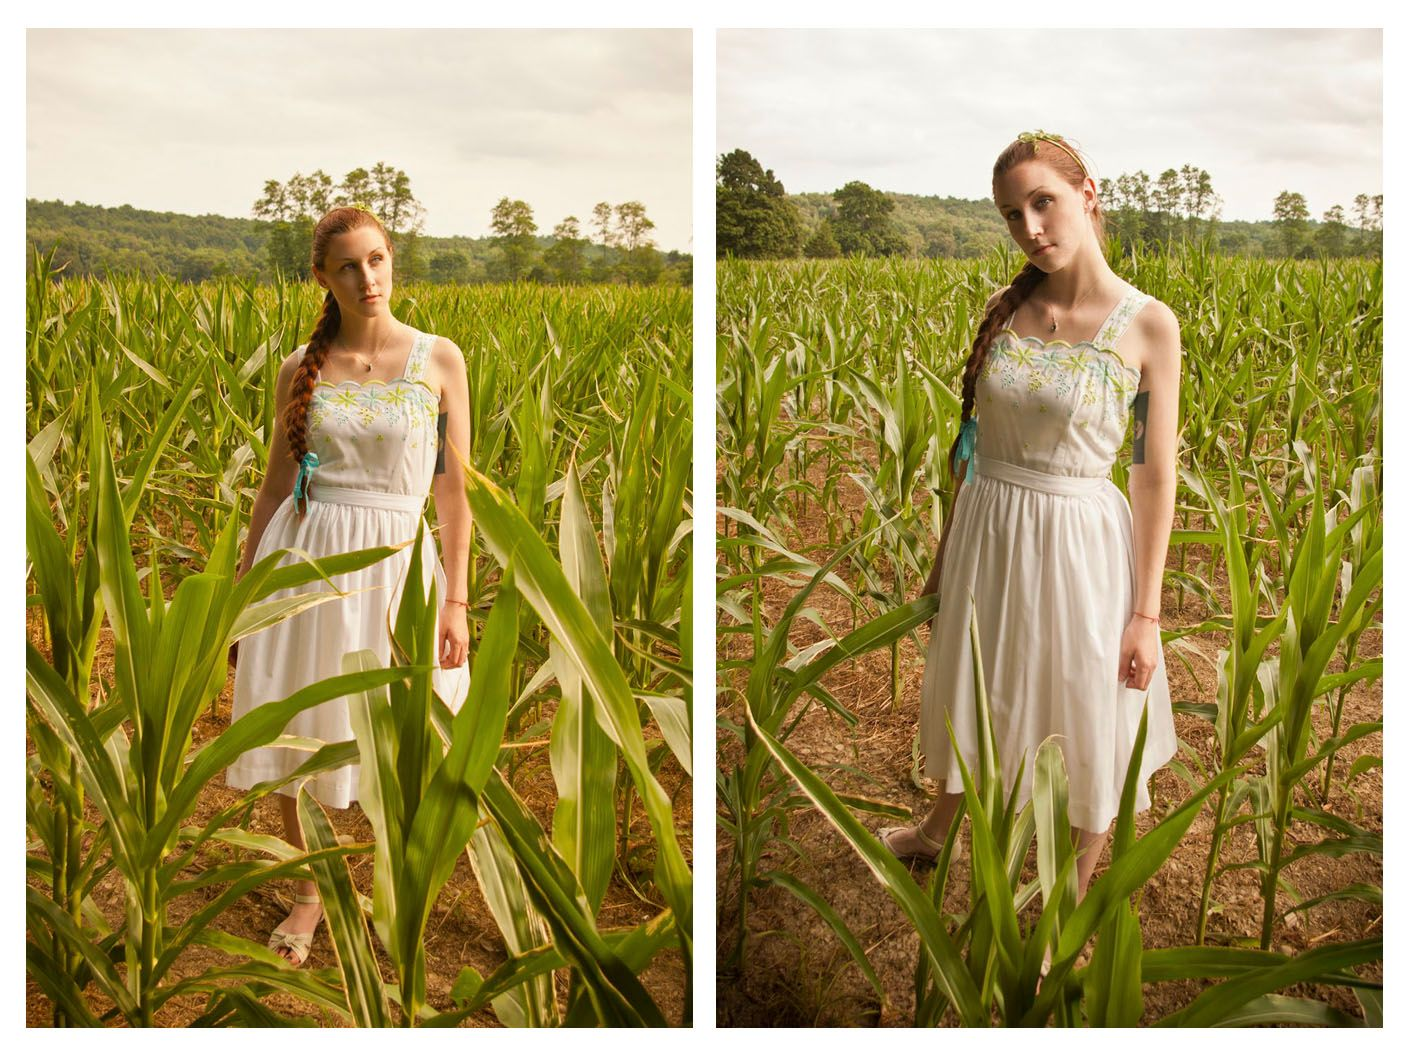 lady of the cornfield - justicepirate.com #vintage #60s #fashion #sundress #cornfield #blogger #justicepirate